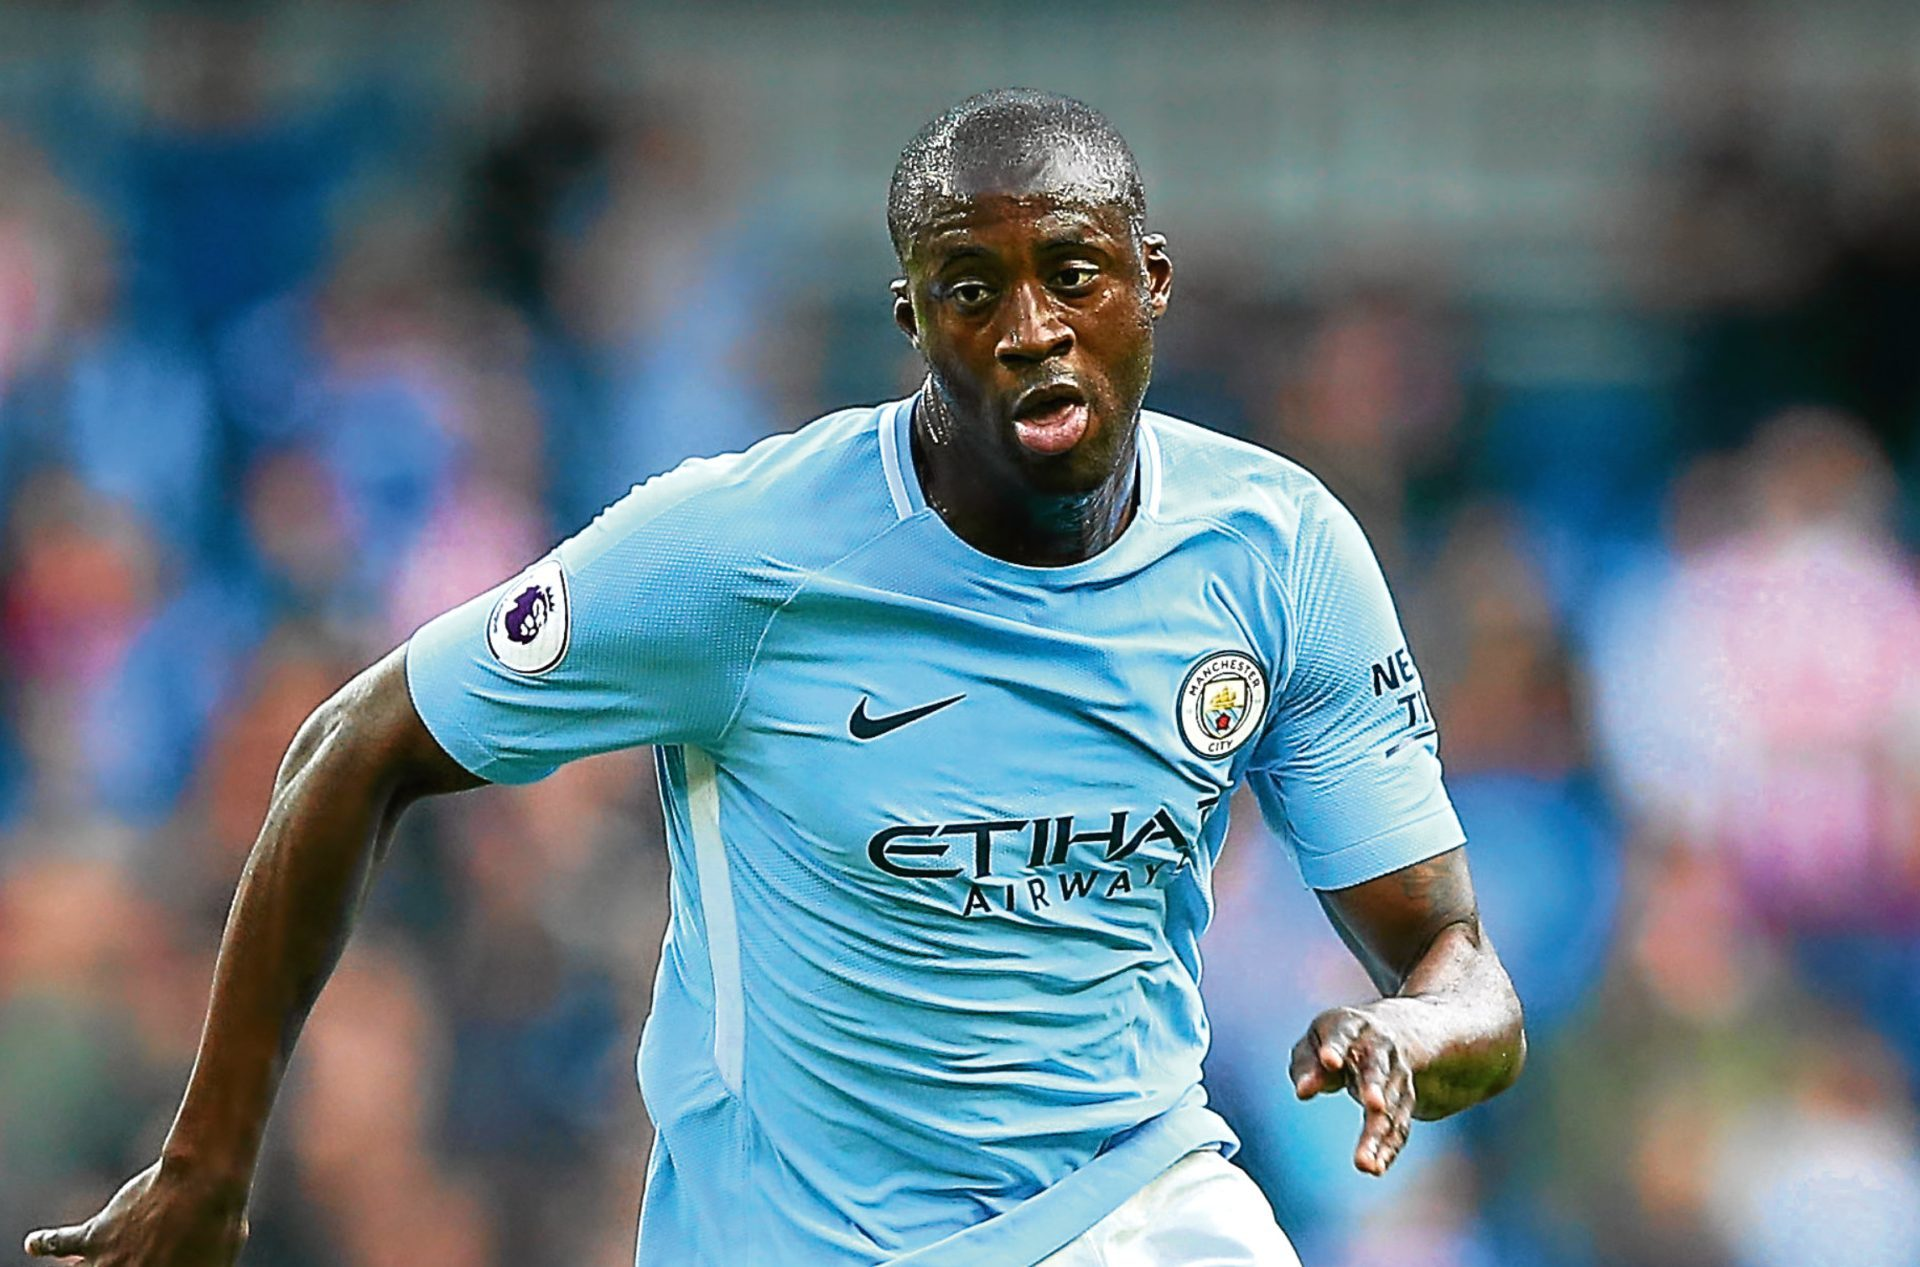 Yaya Toure has his sights set on another Champions League winner's medal